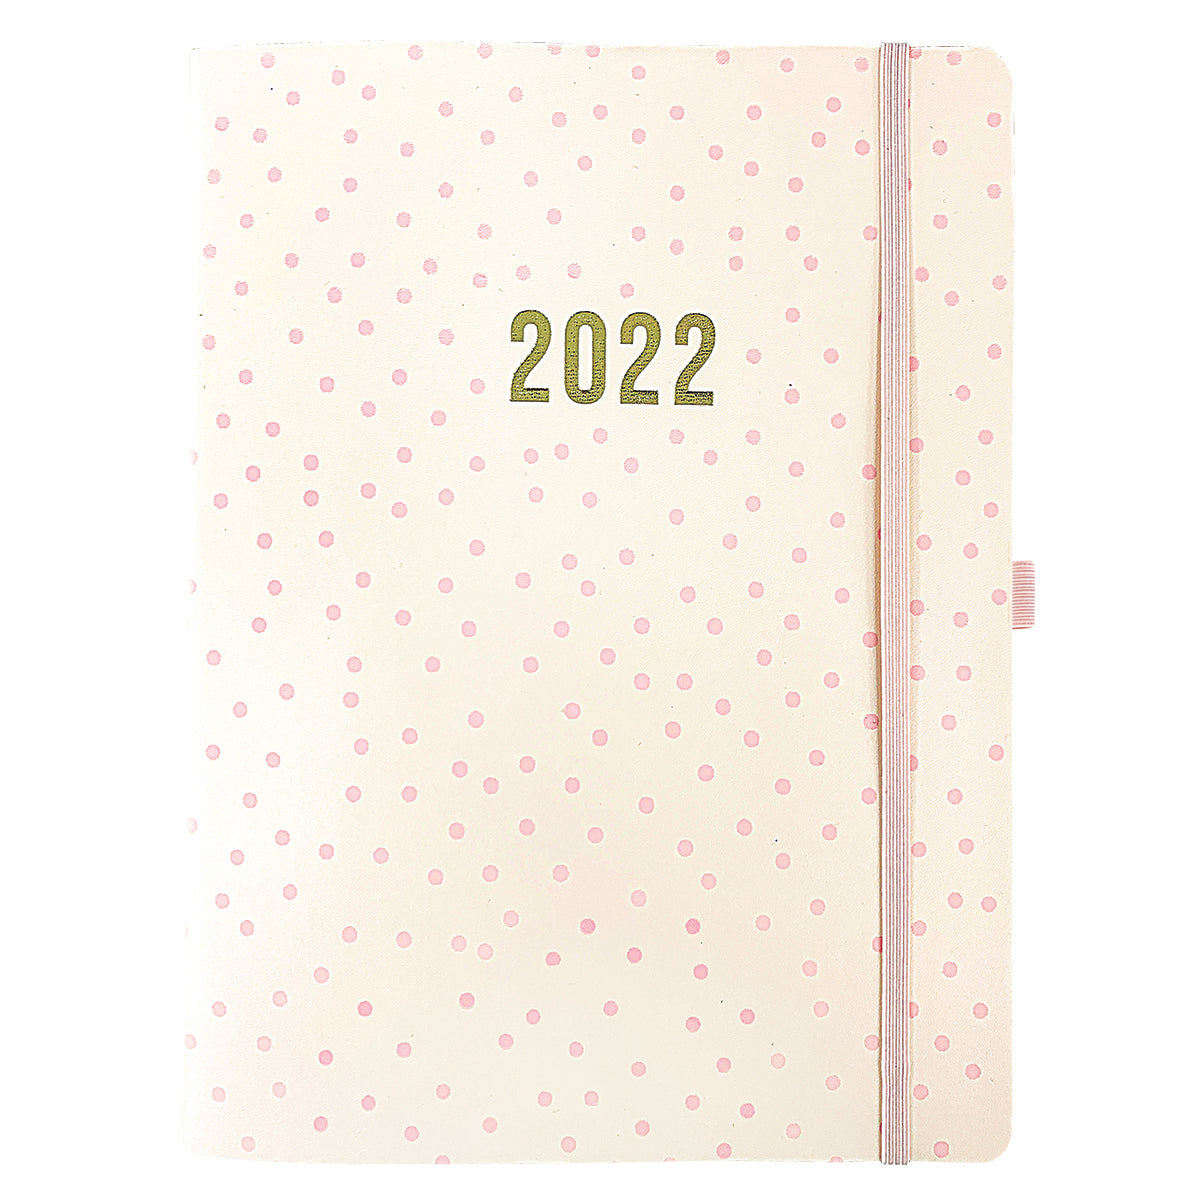 Polka dot 8x10 18-Month Soft Cover Vegan Leather Planner